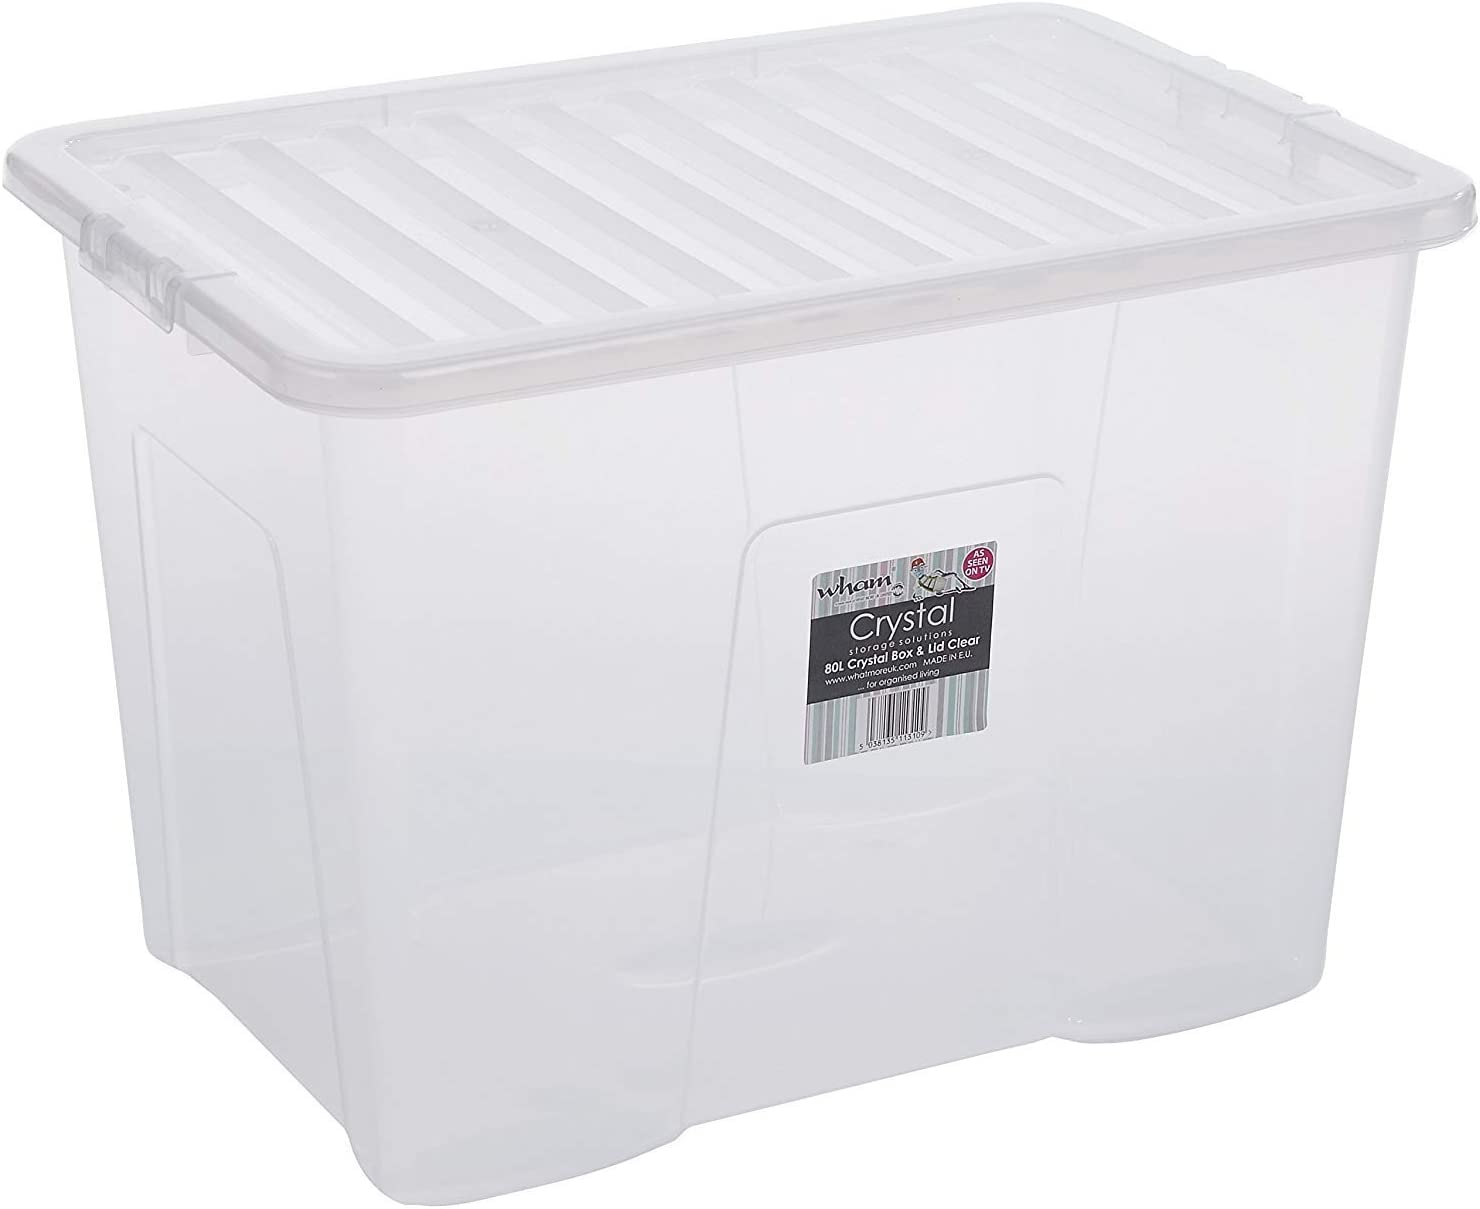 Wham Plastic Storage Boxes - Pack Of 5 (80 Litre)